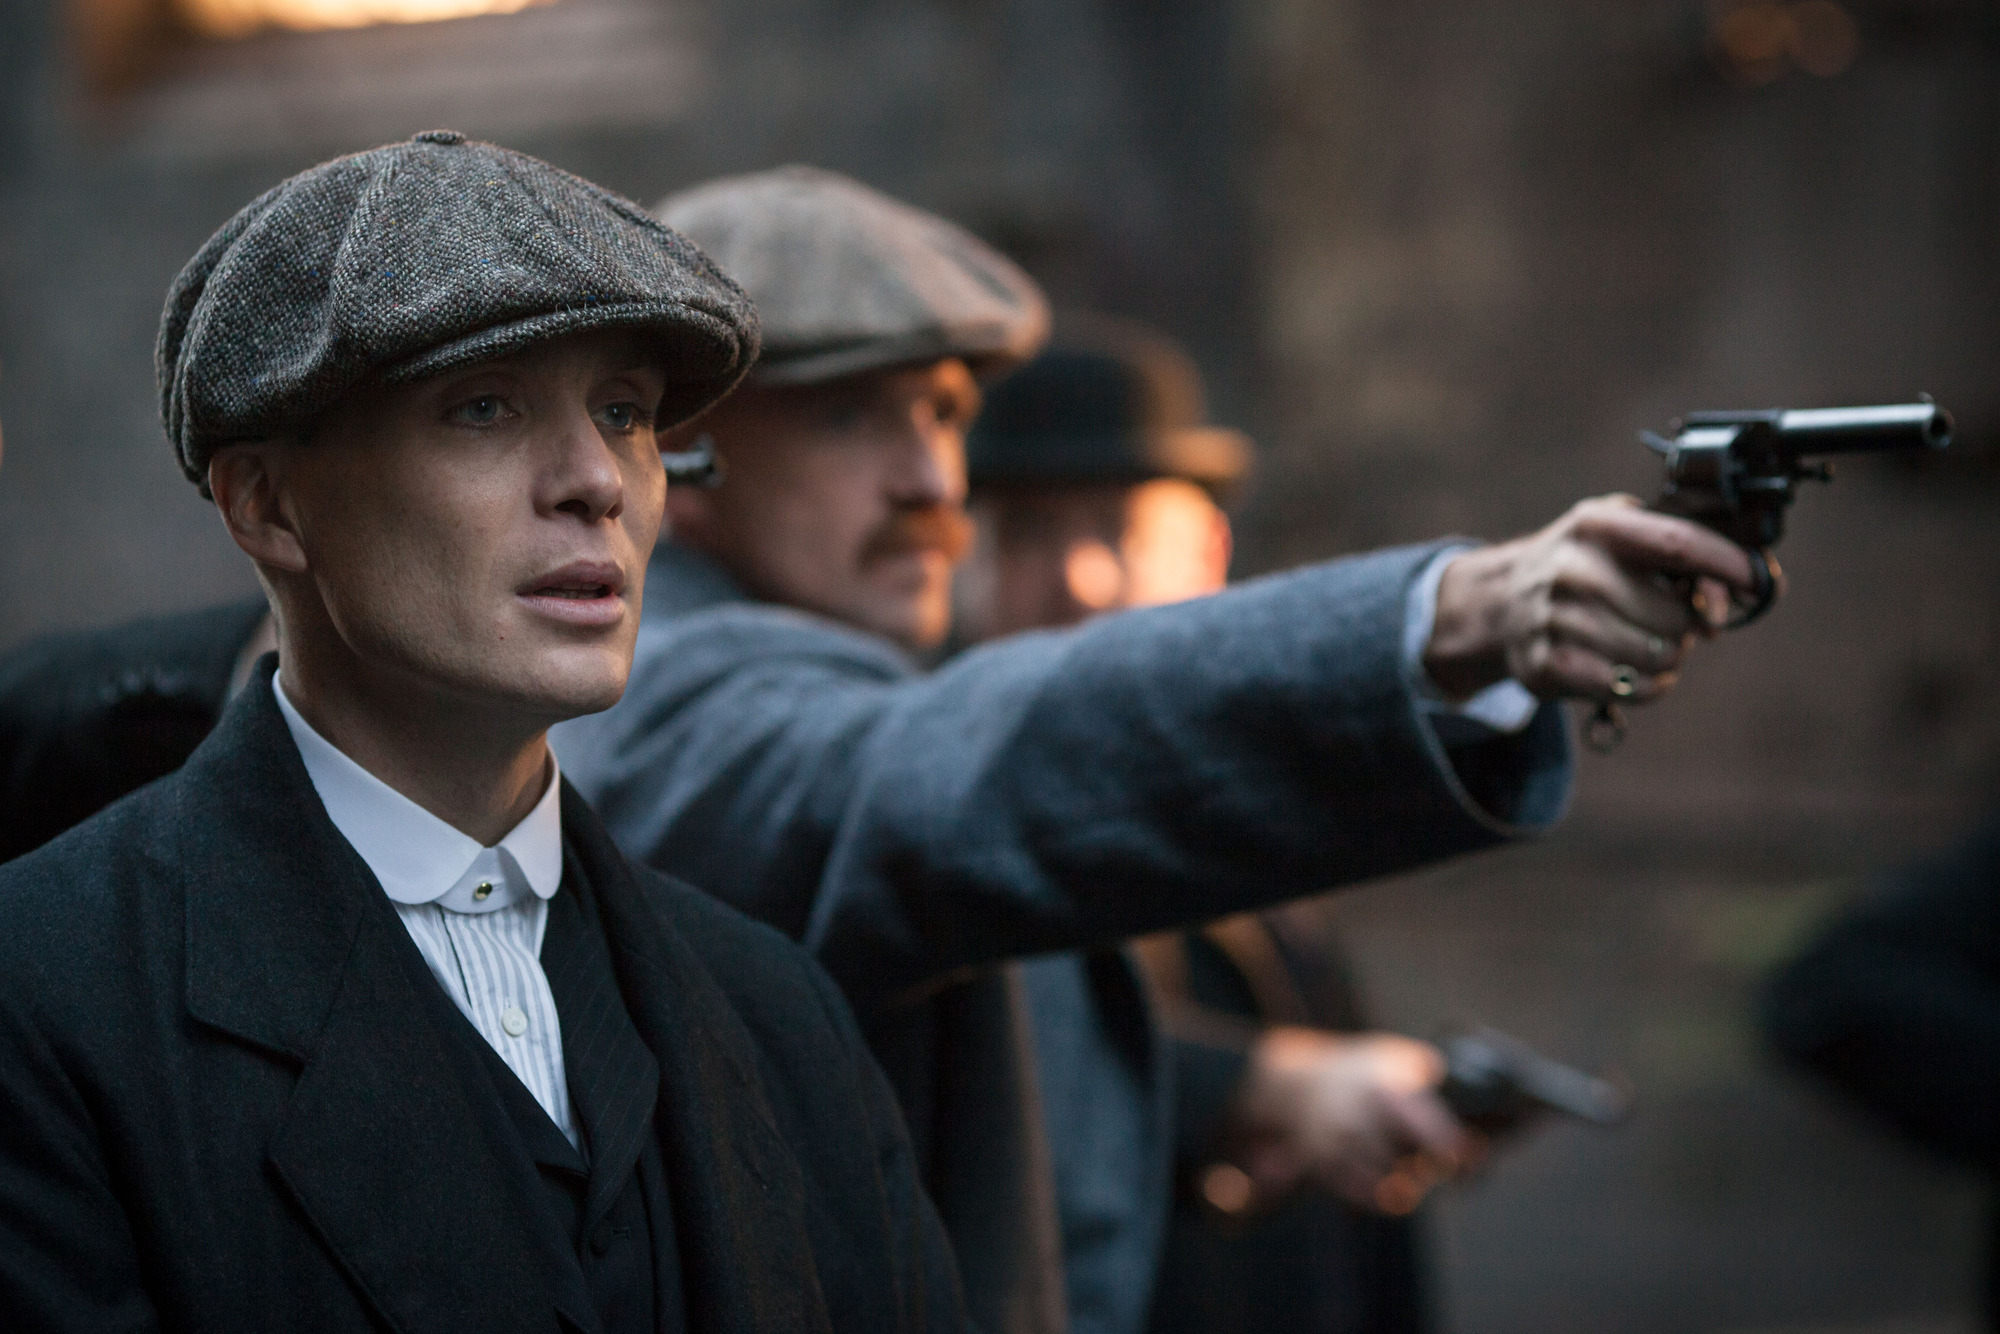 Cillian Murphy starred in the Birmingham-set drama Peaky Blinders (Picture: BBC)